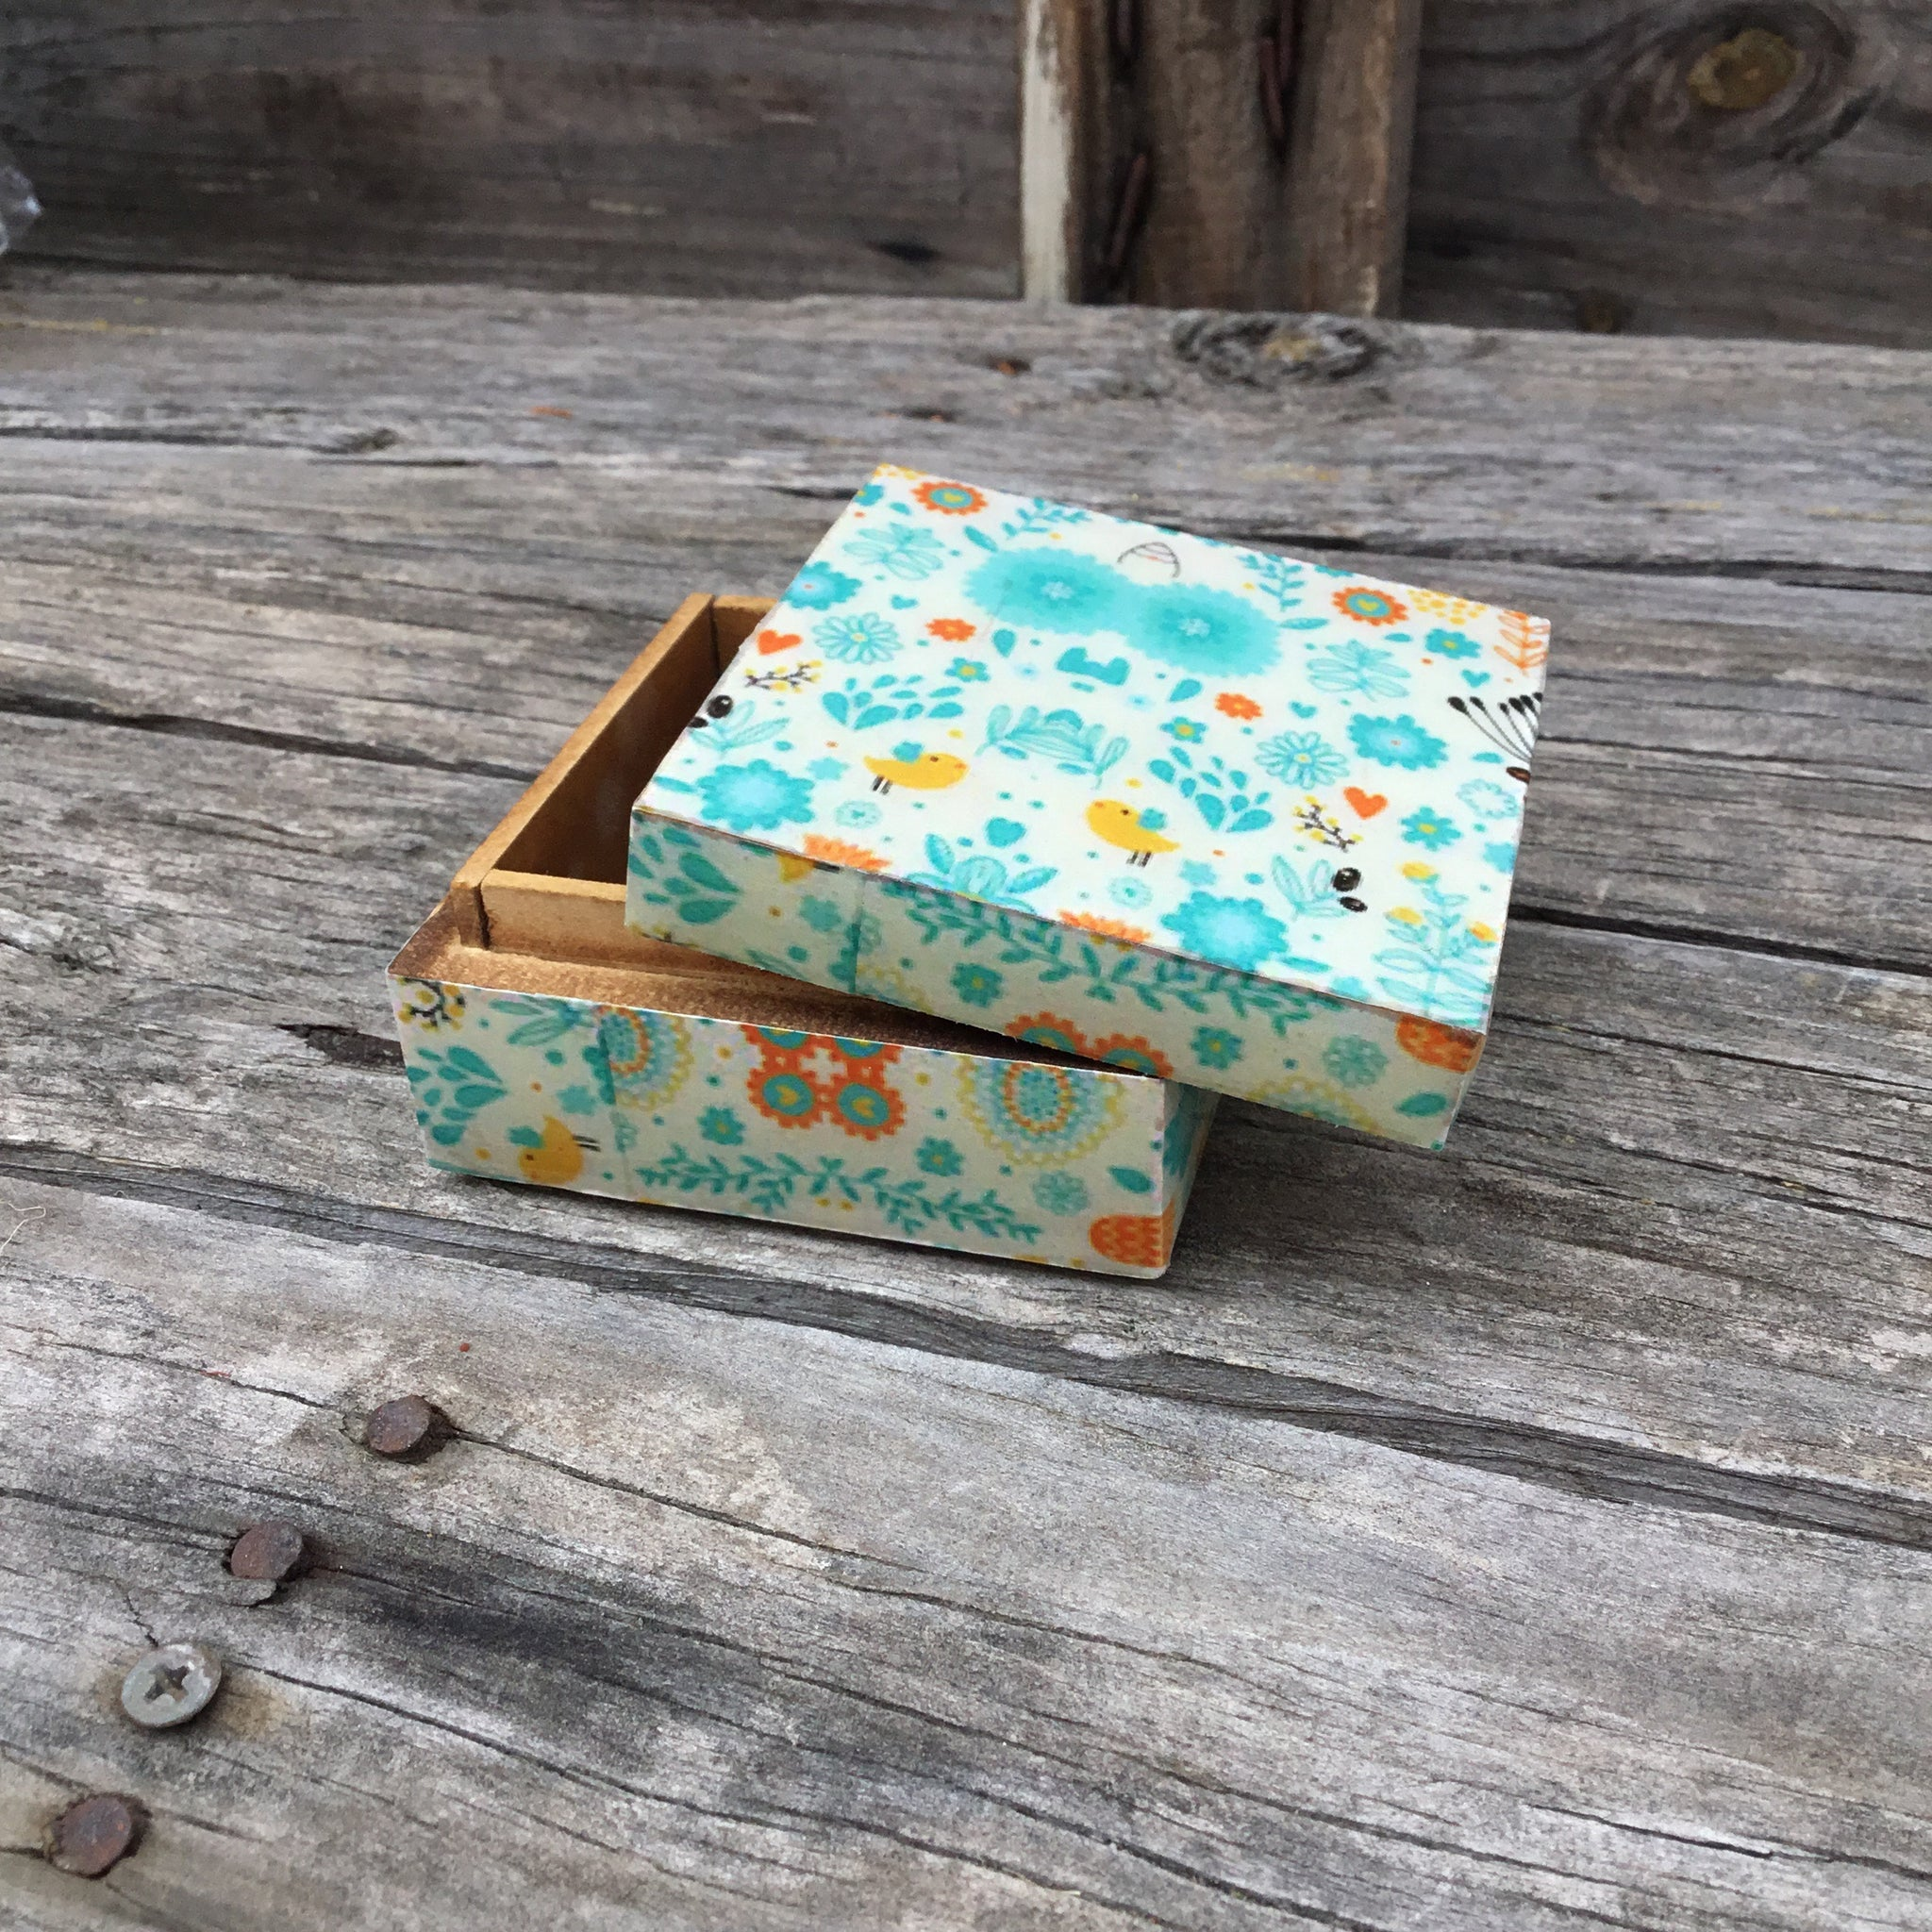 Fair Trade Box 3 x 3 Flower Design